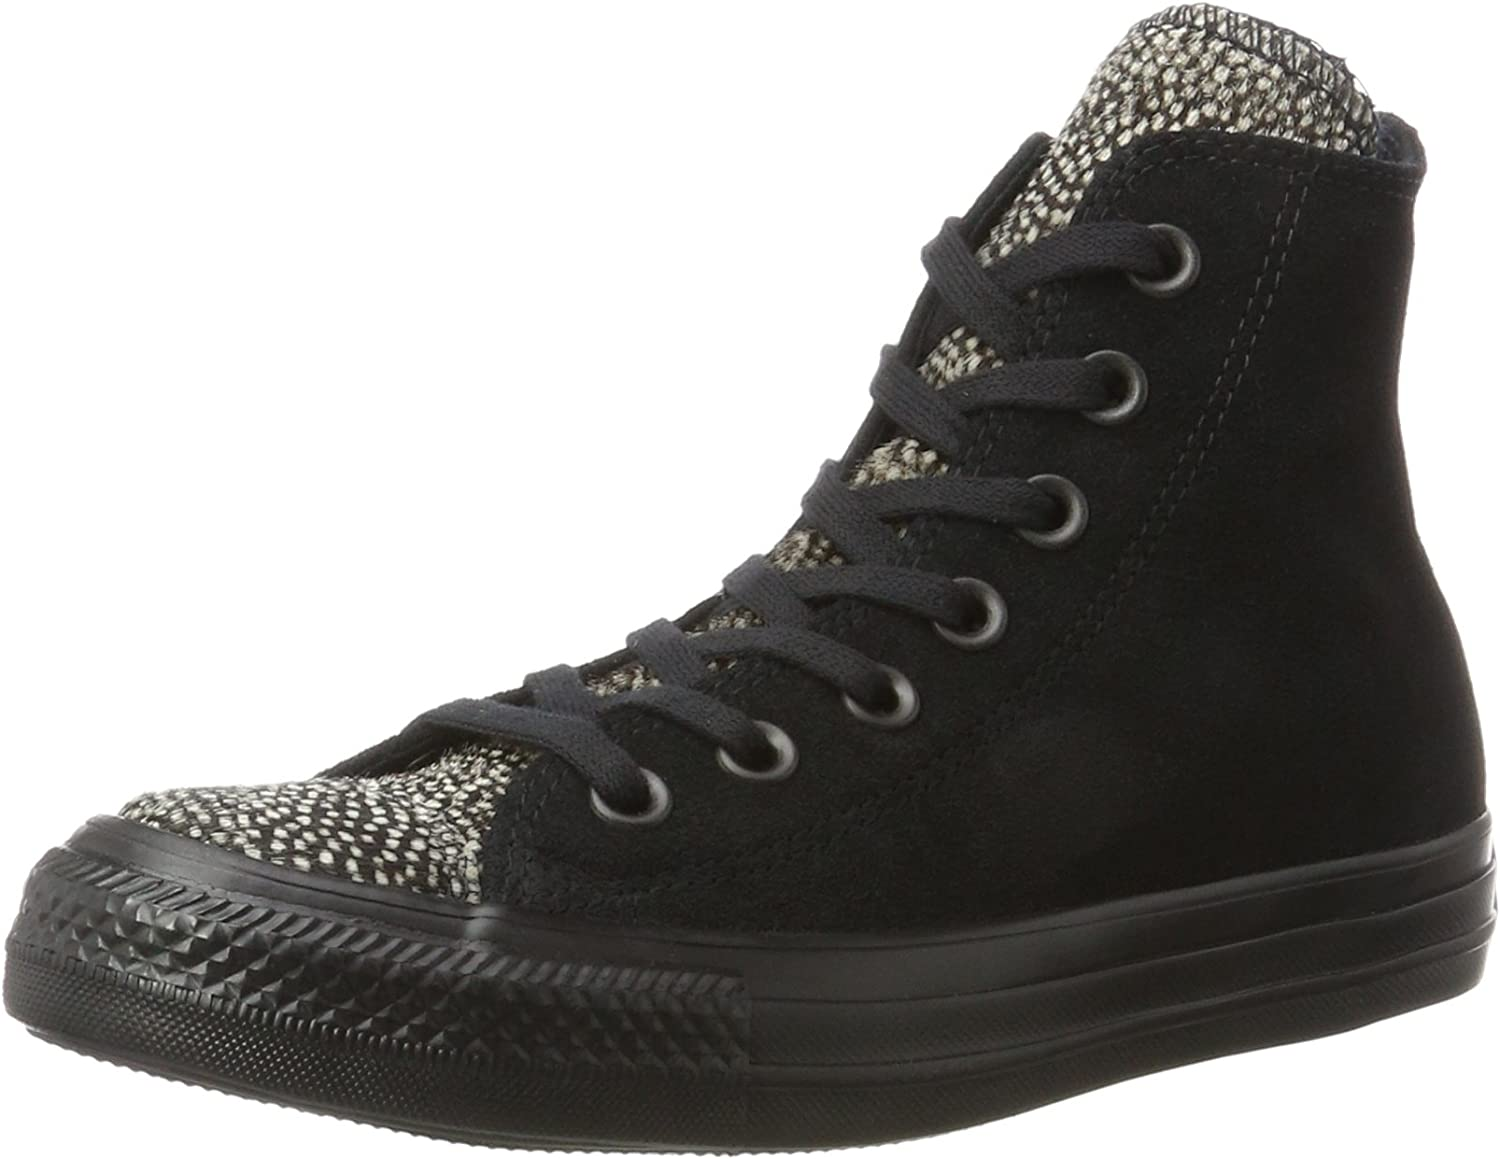 Converse Chuck Taylor All Star - HIGH TOP Sneakers - Unisex